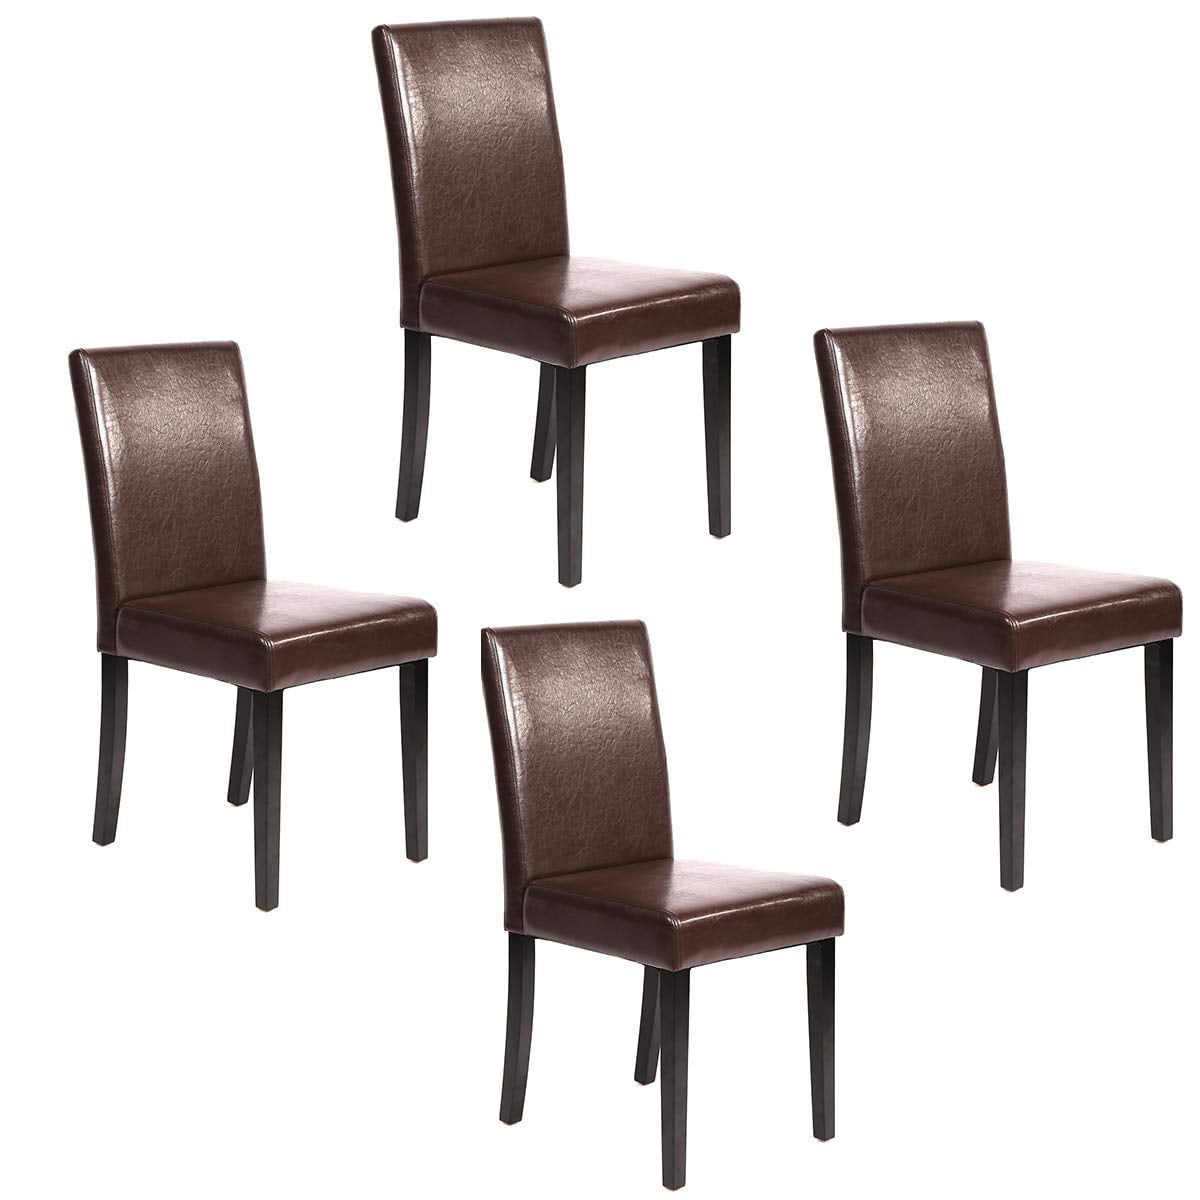 Set Of 4 Brown Leather Contemporary Elegant Design Dining Chairs Home Room U42 Walmart Com Walmart Com